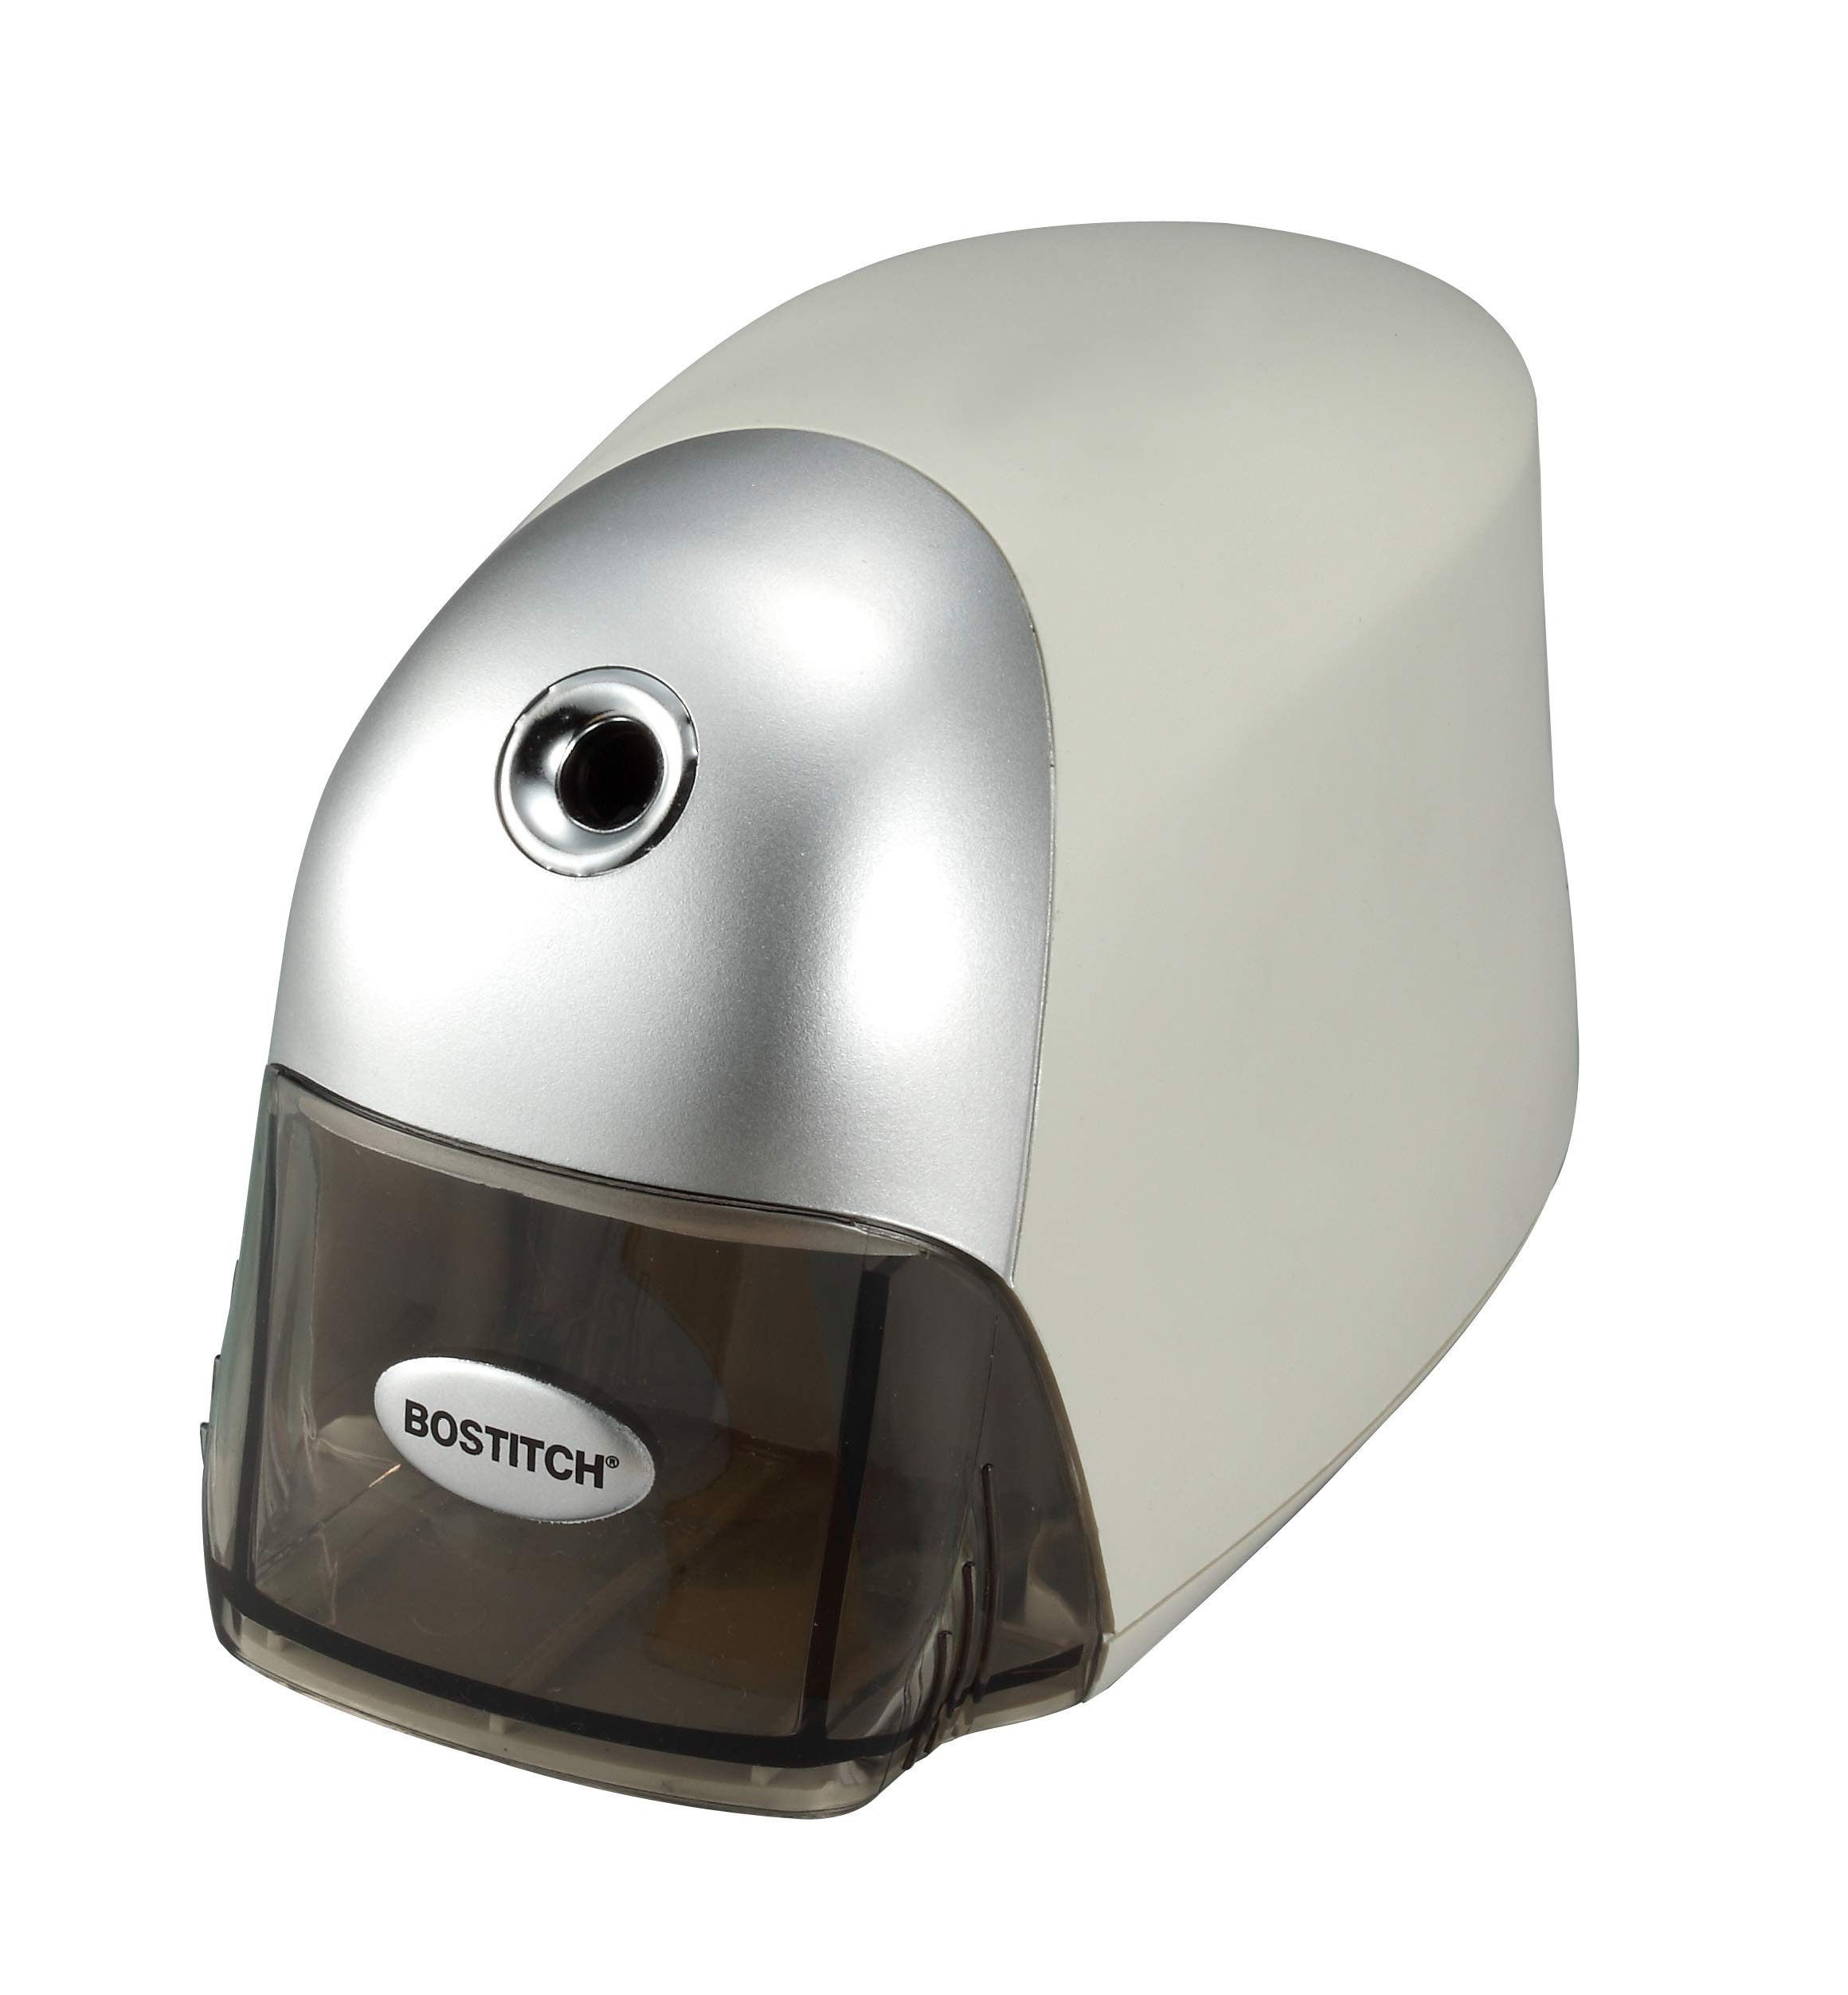 Bostitch EPS8HDGRY QuietSharp Executive Electric Pencil Sharpener, Gray